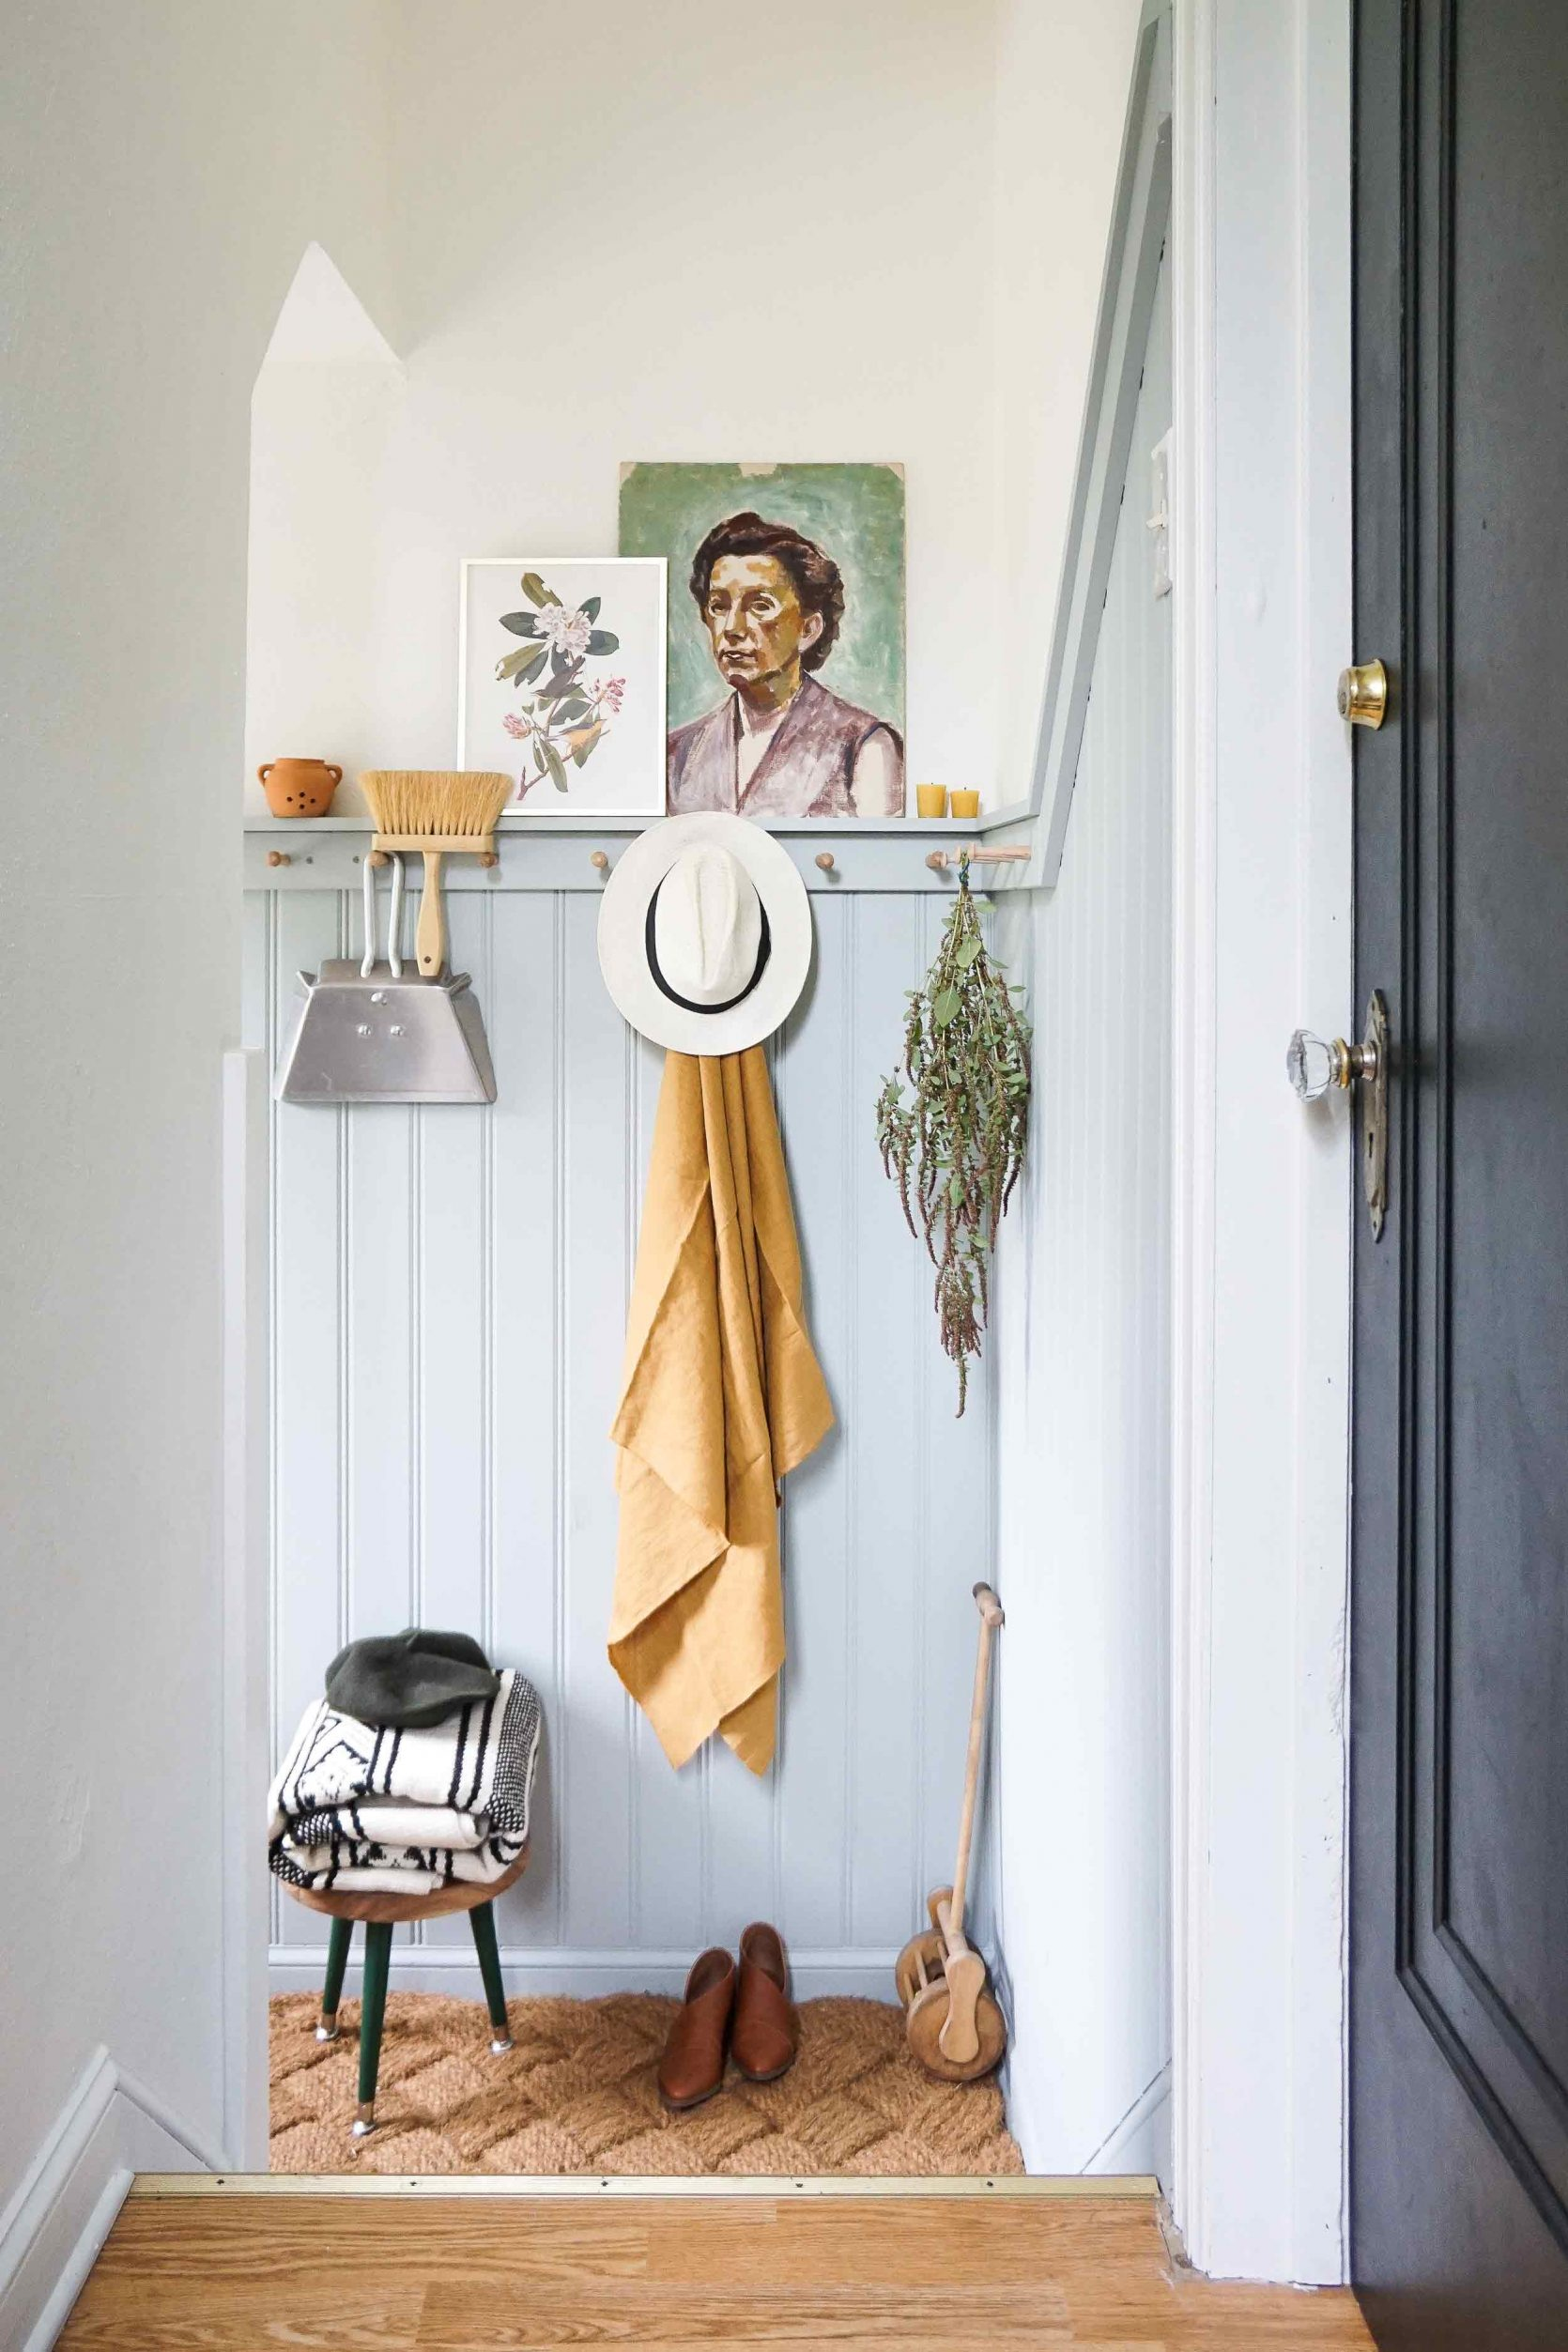 creative uses of peg rails around the house